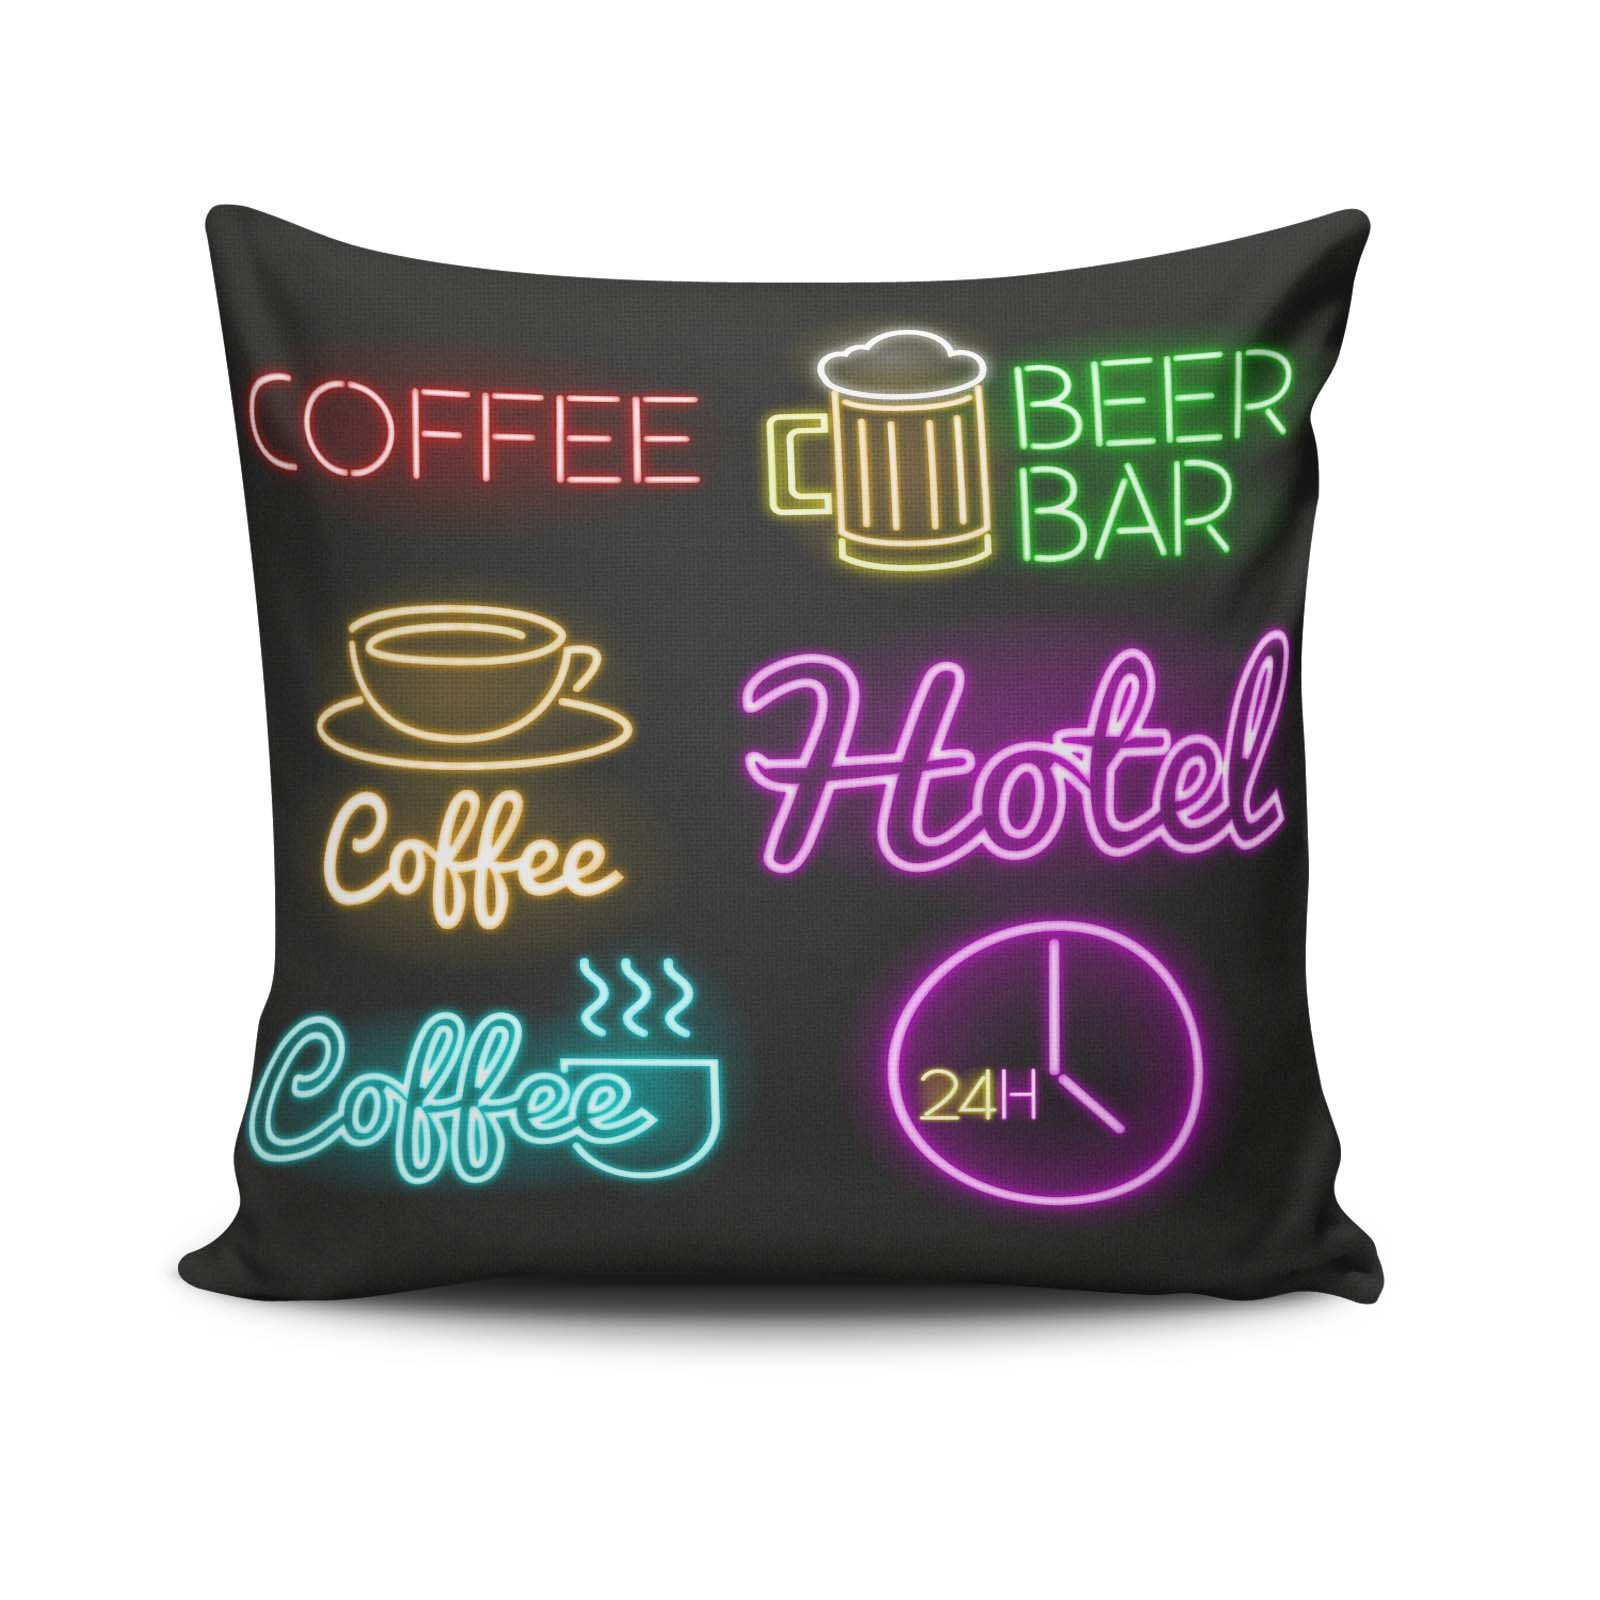 Premium Decorative Cushion Throw Pillow Hypoallergenic Stuffer Silicone Filling (17.5'' x 17.5'') | Coffee Beer Bar Hot Coffee Hotel Time Clock Twentyfour Hour Home 50% Cotton 50% Polyester Full with Si